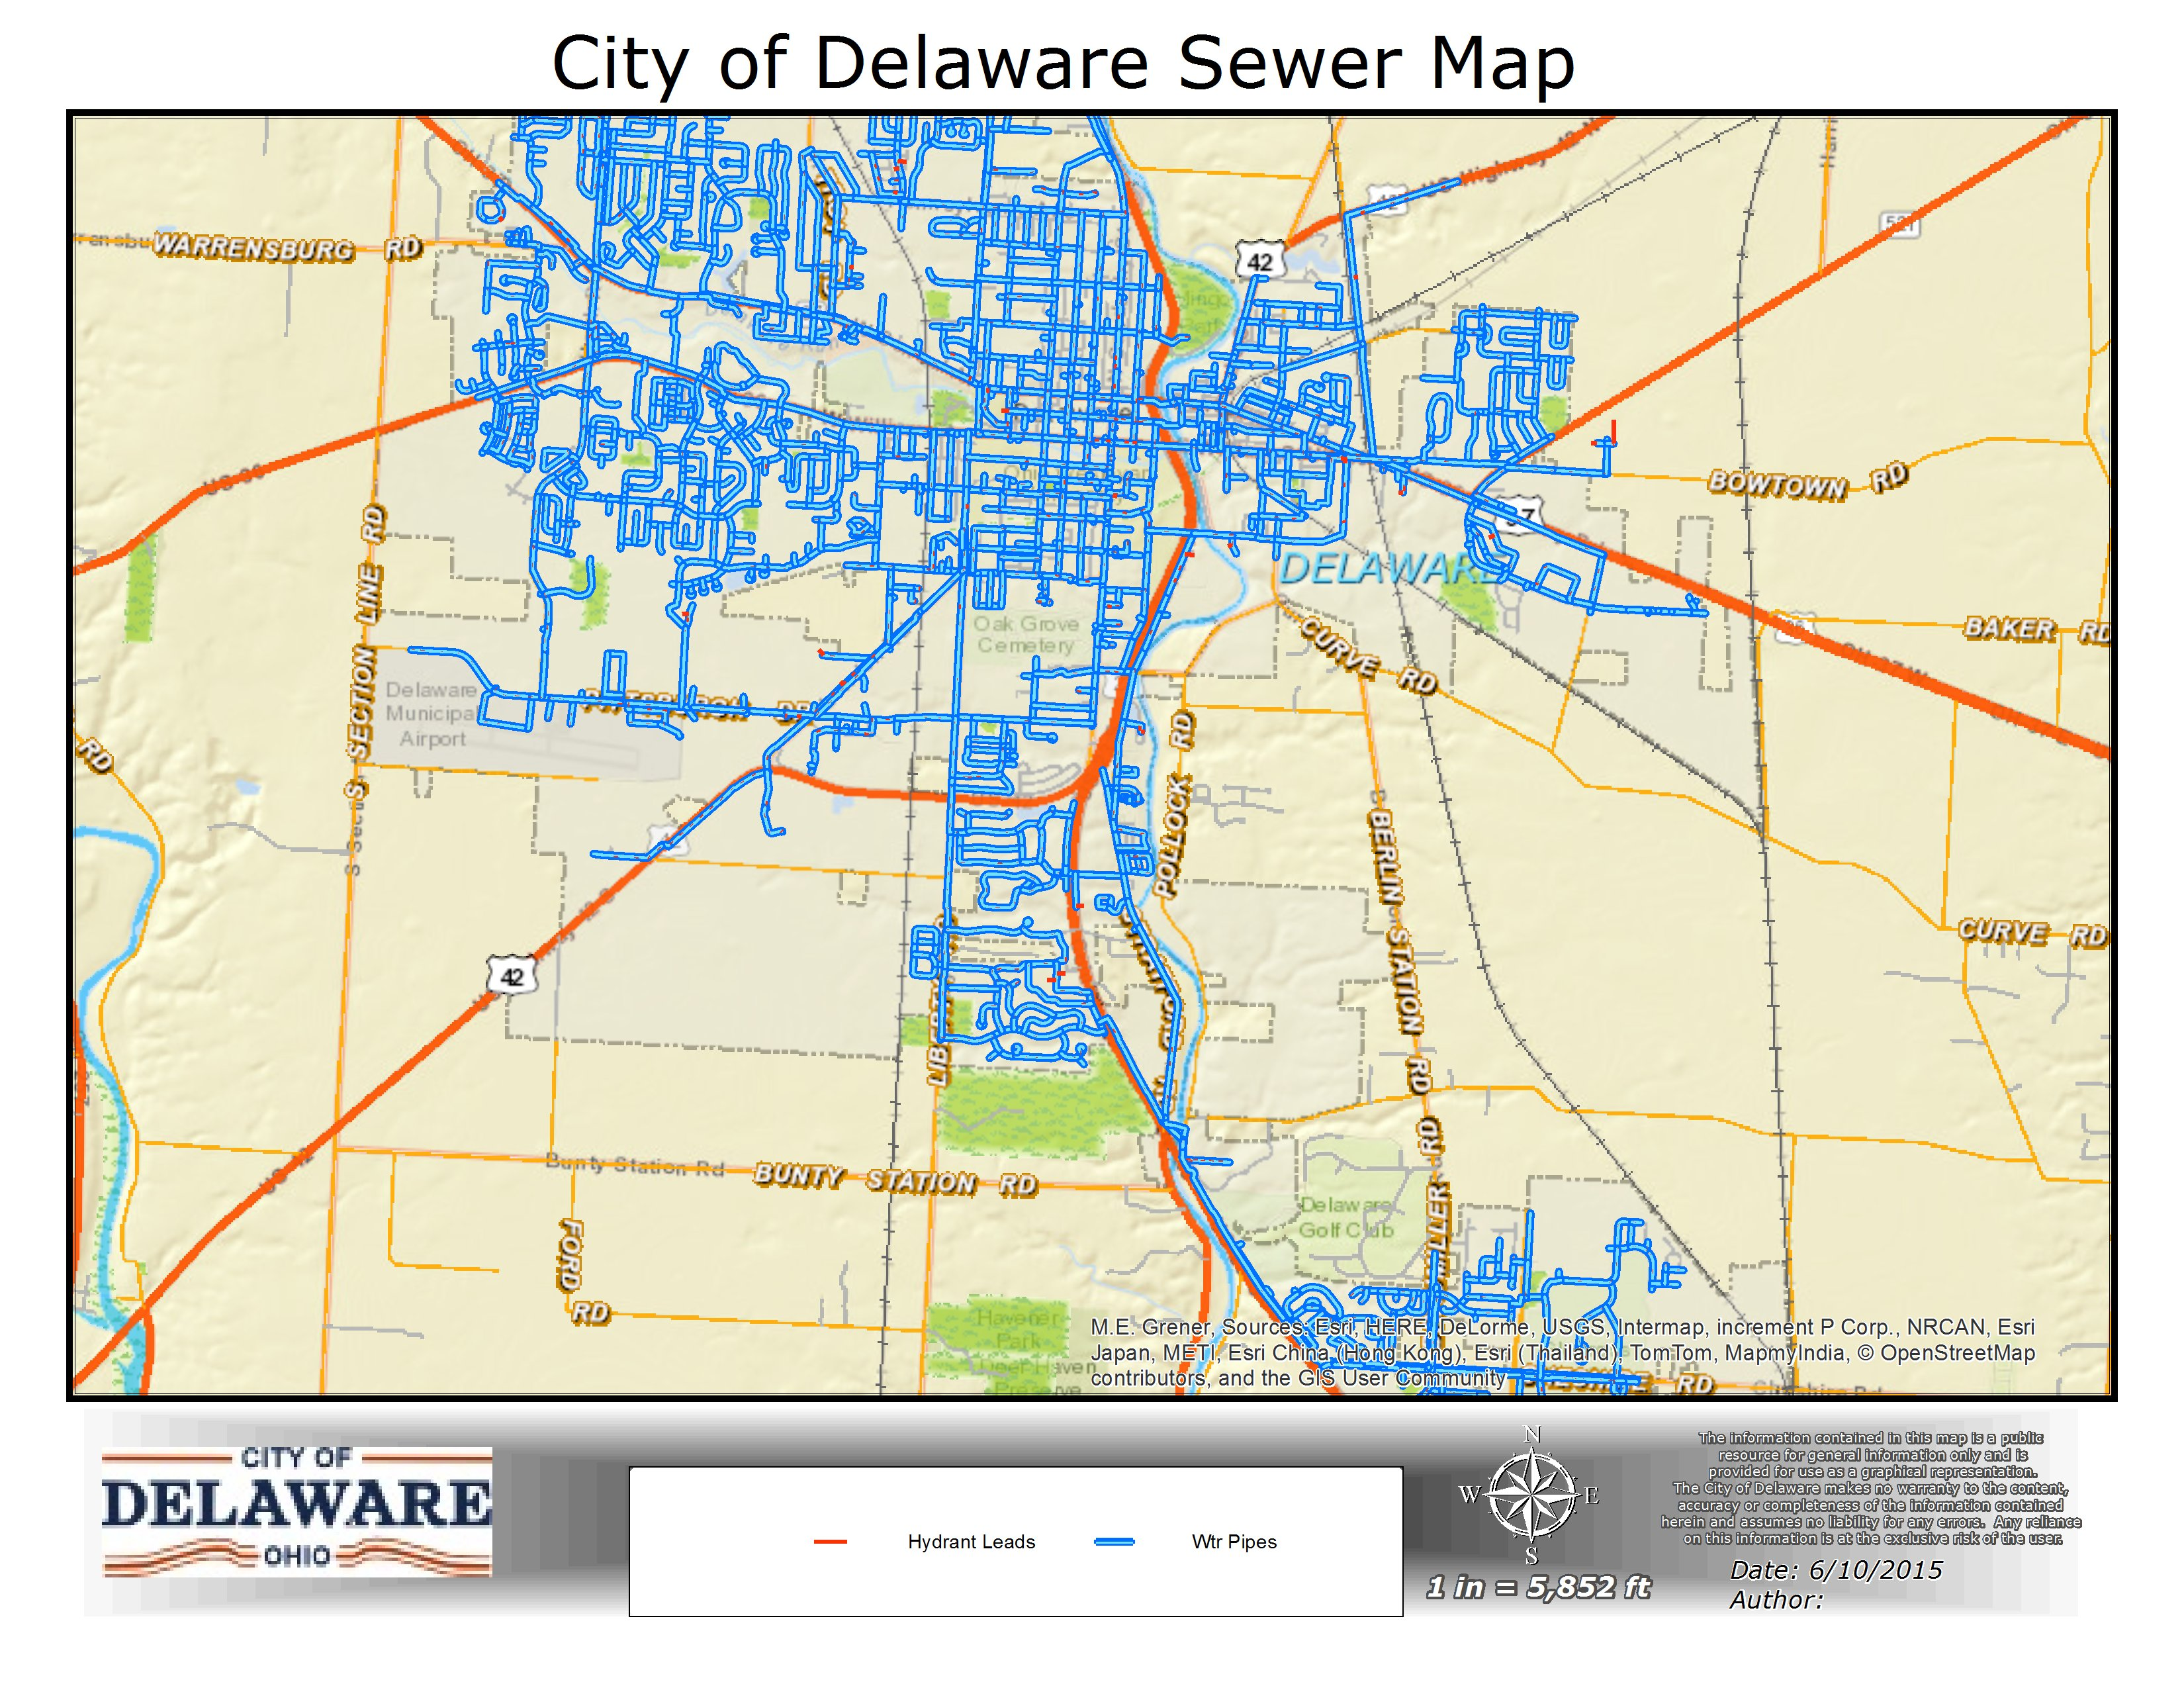 Incentives and Assets for the City of Delaware Ohio